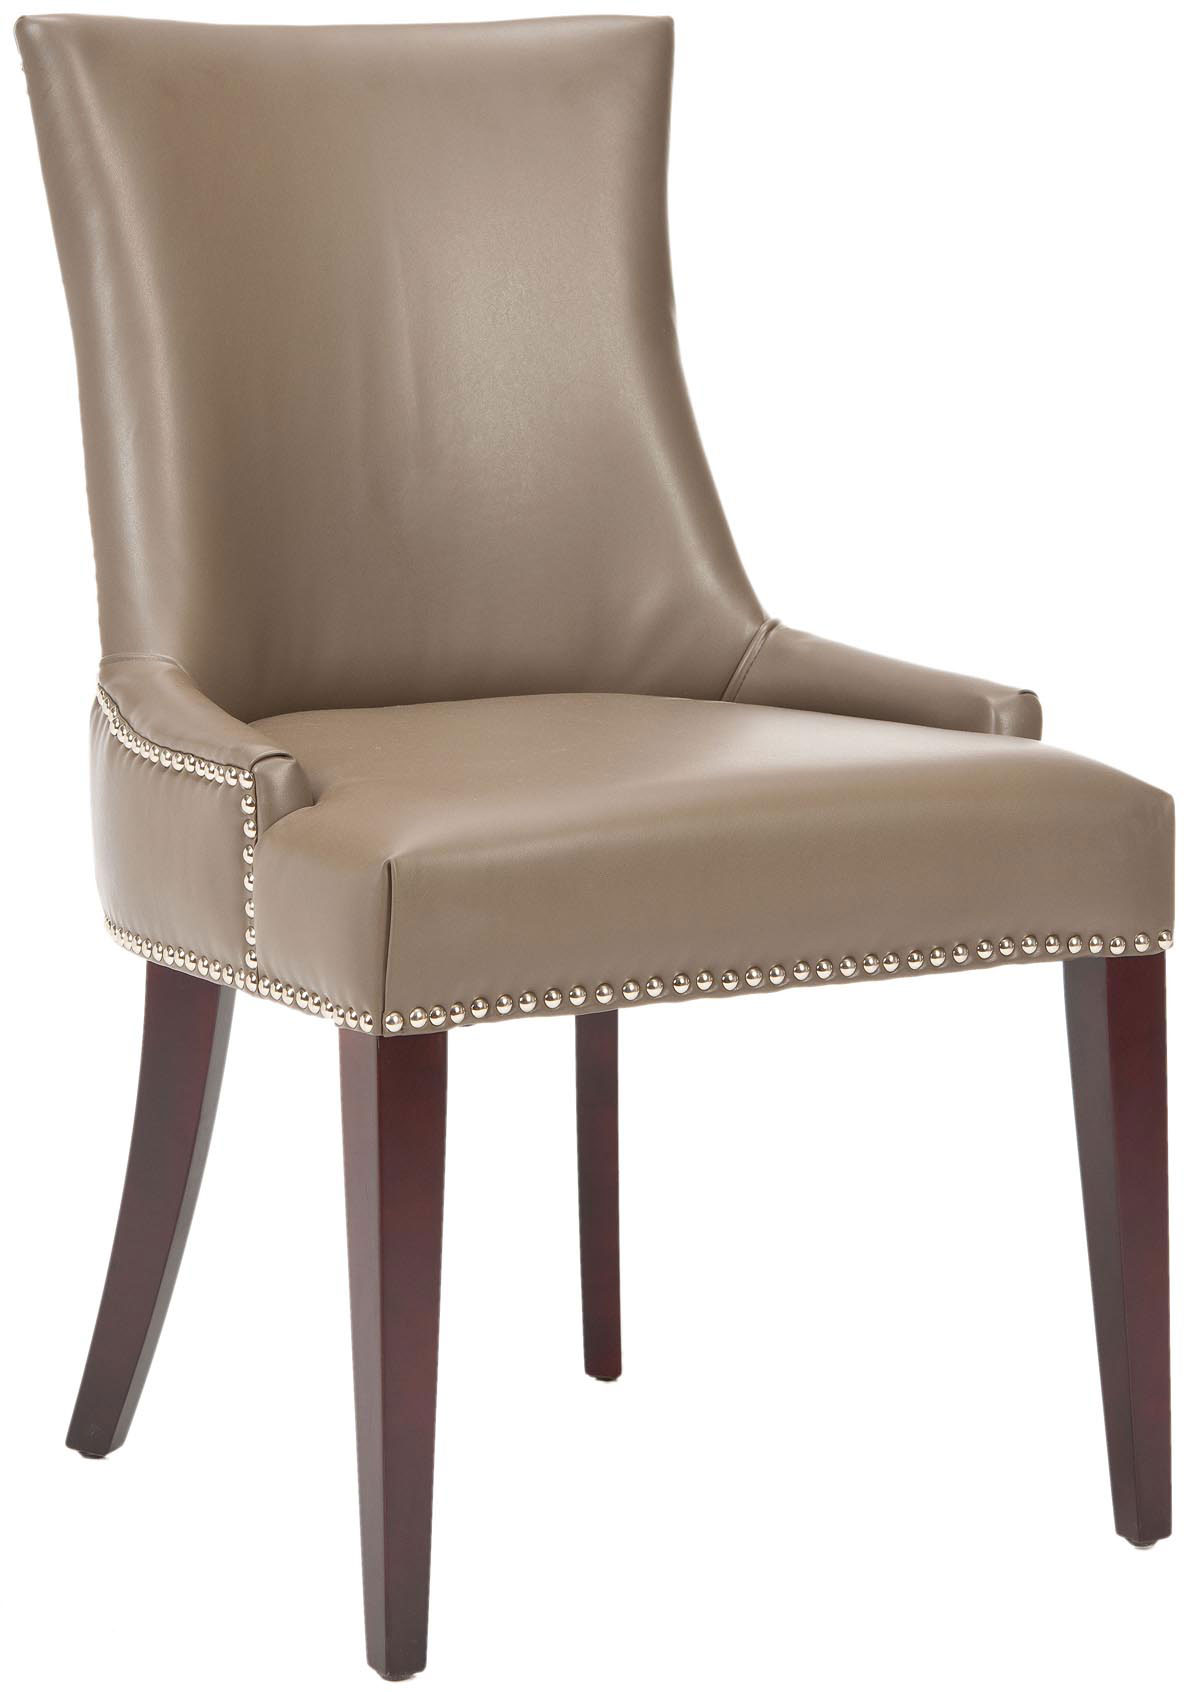 Dining Room Chairs Leather Mcr4502g Dining Chairs Furniture By Safavieh